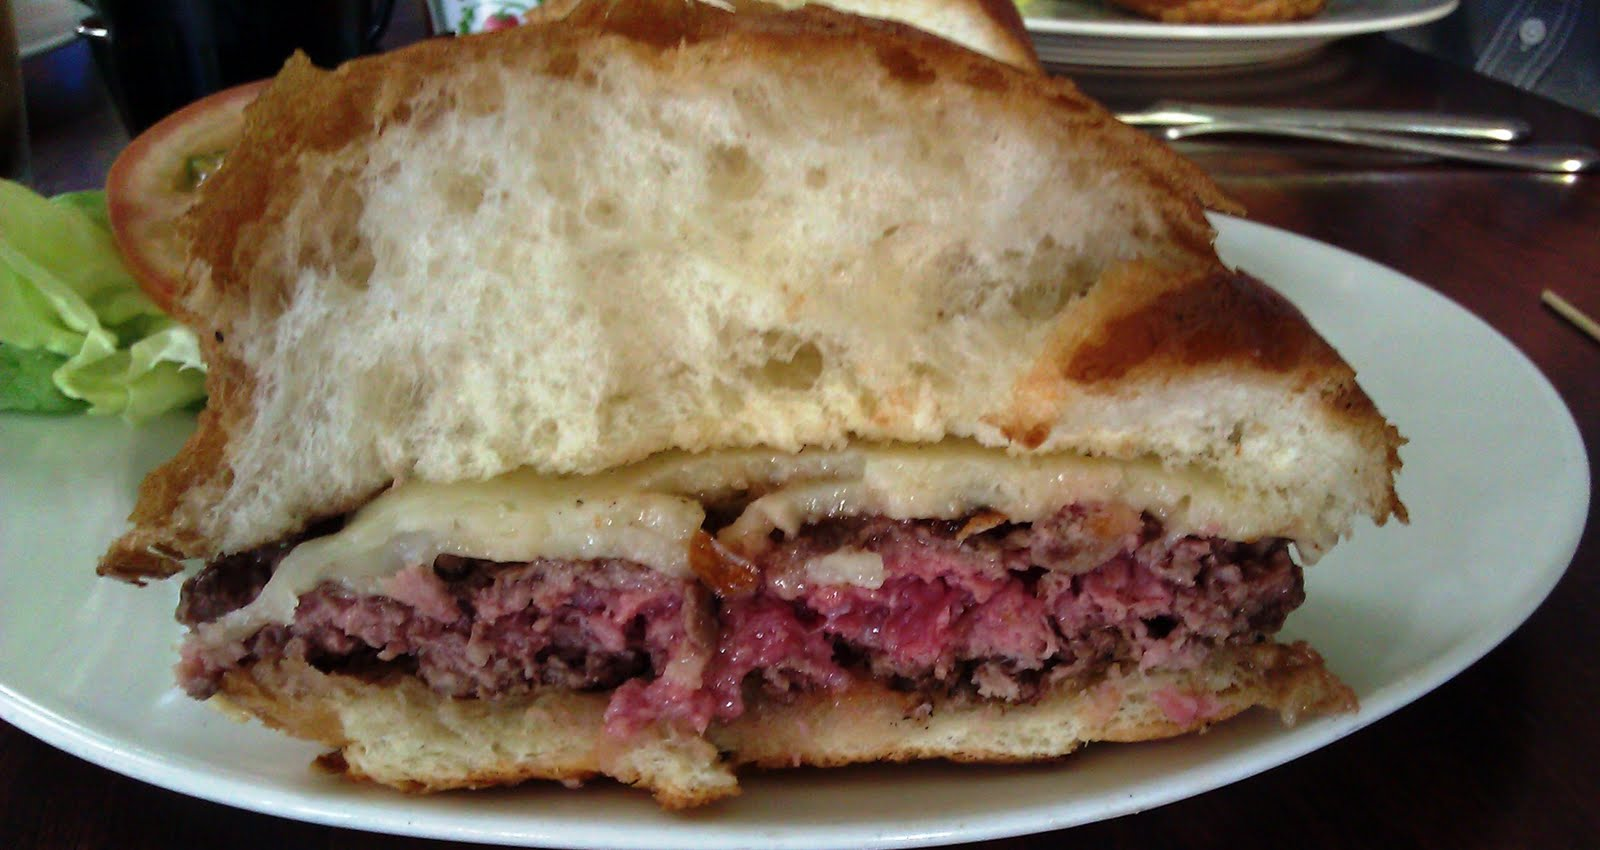 of the Best The Burger Kitchen That Anyone Can Make